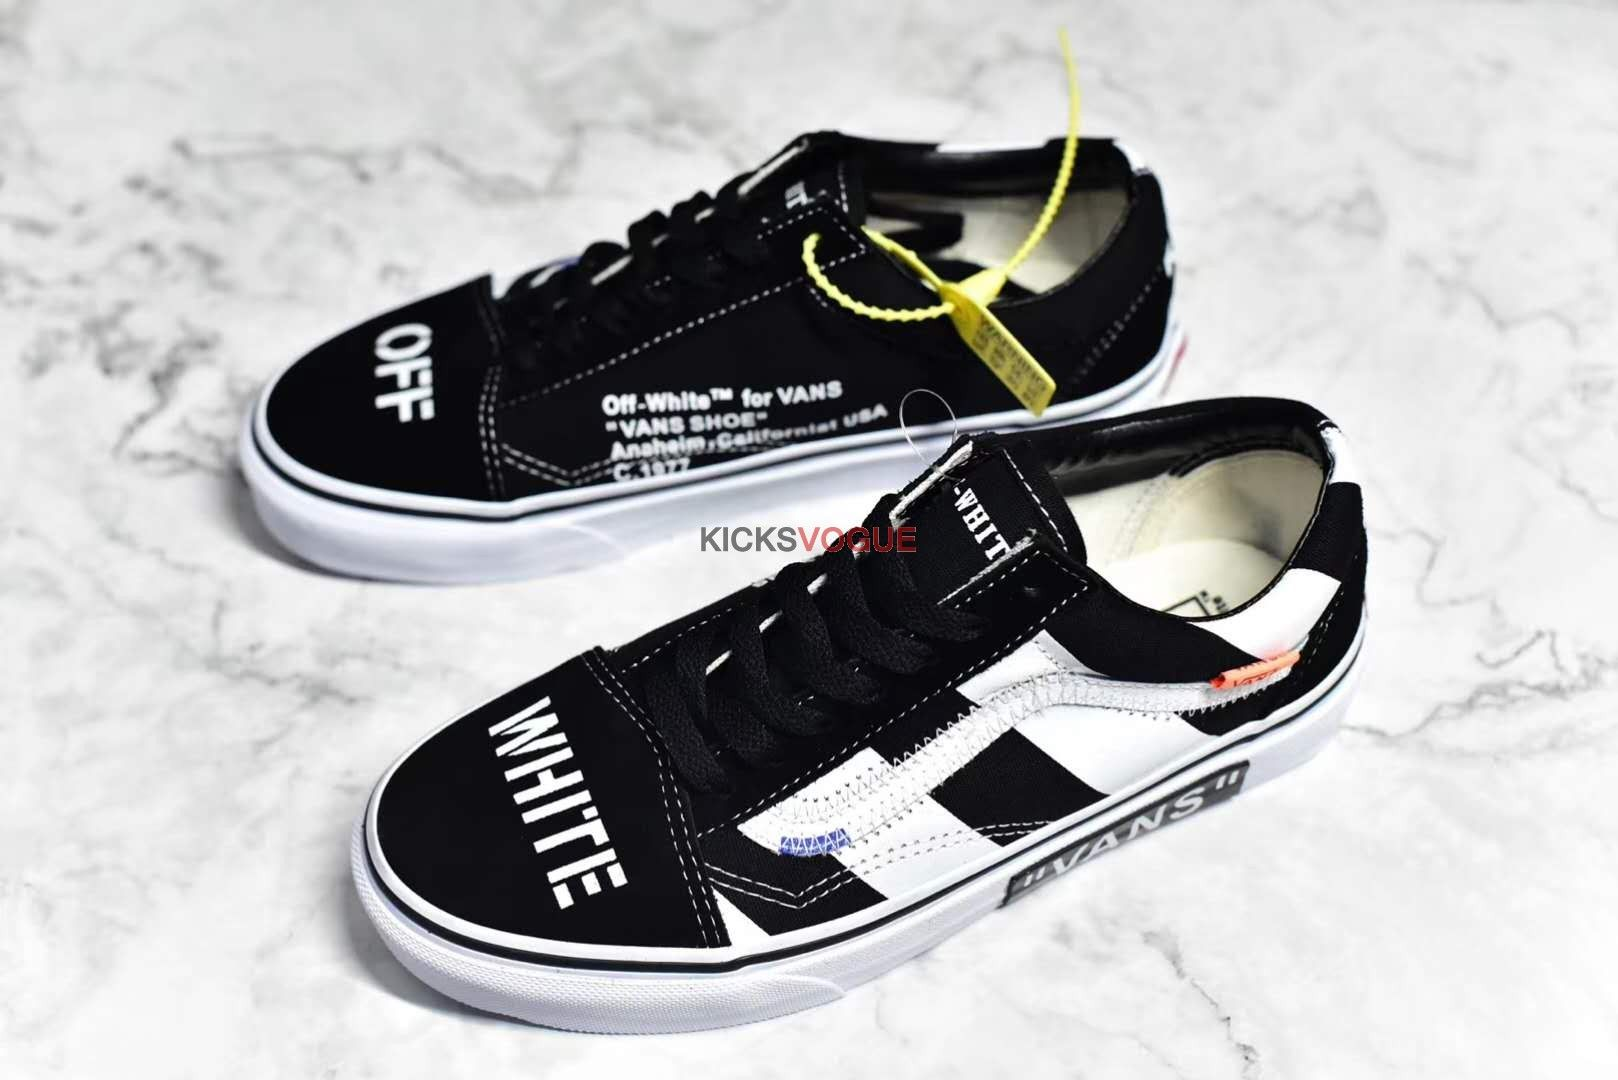 Custom Off White x Vans Old Skool | Custom vans shoes, Vans